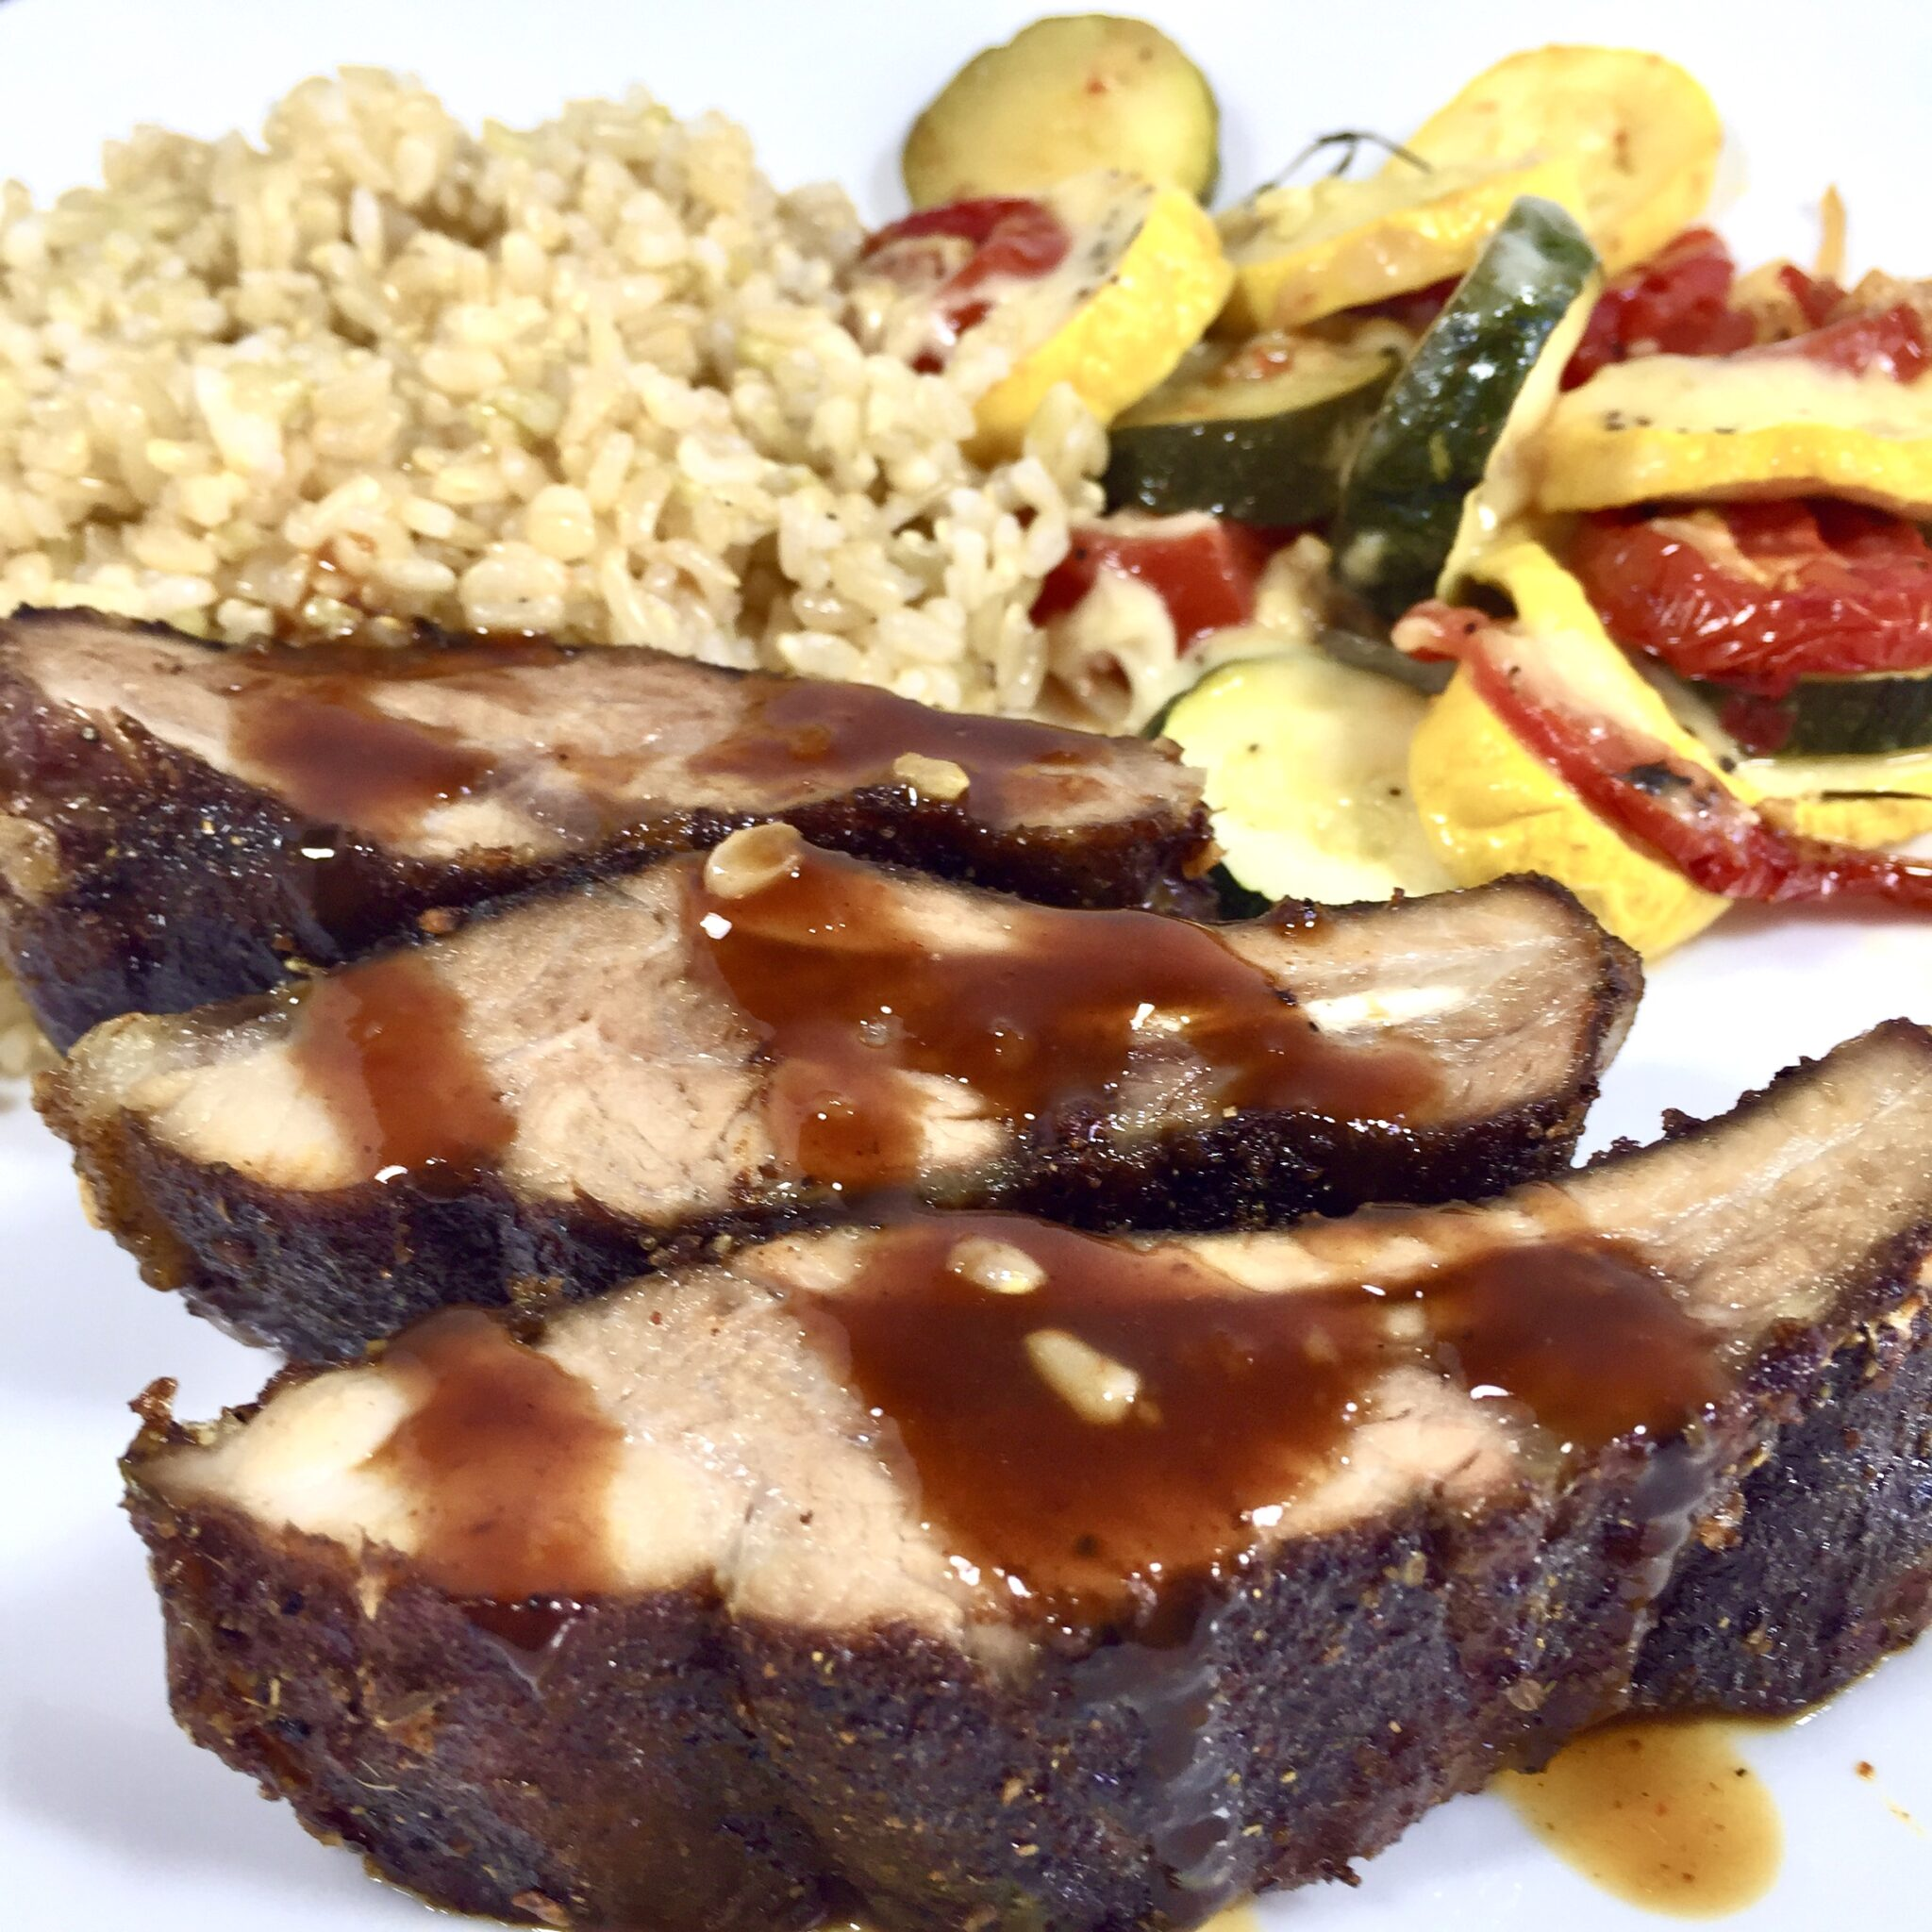 Oven Smoked Dry Ribs with rice and vegetables on a white plate